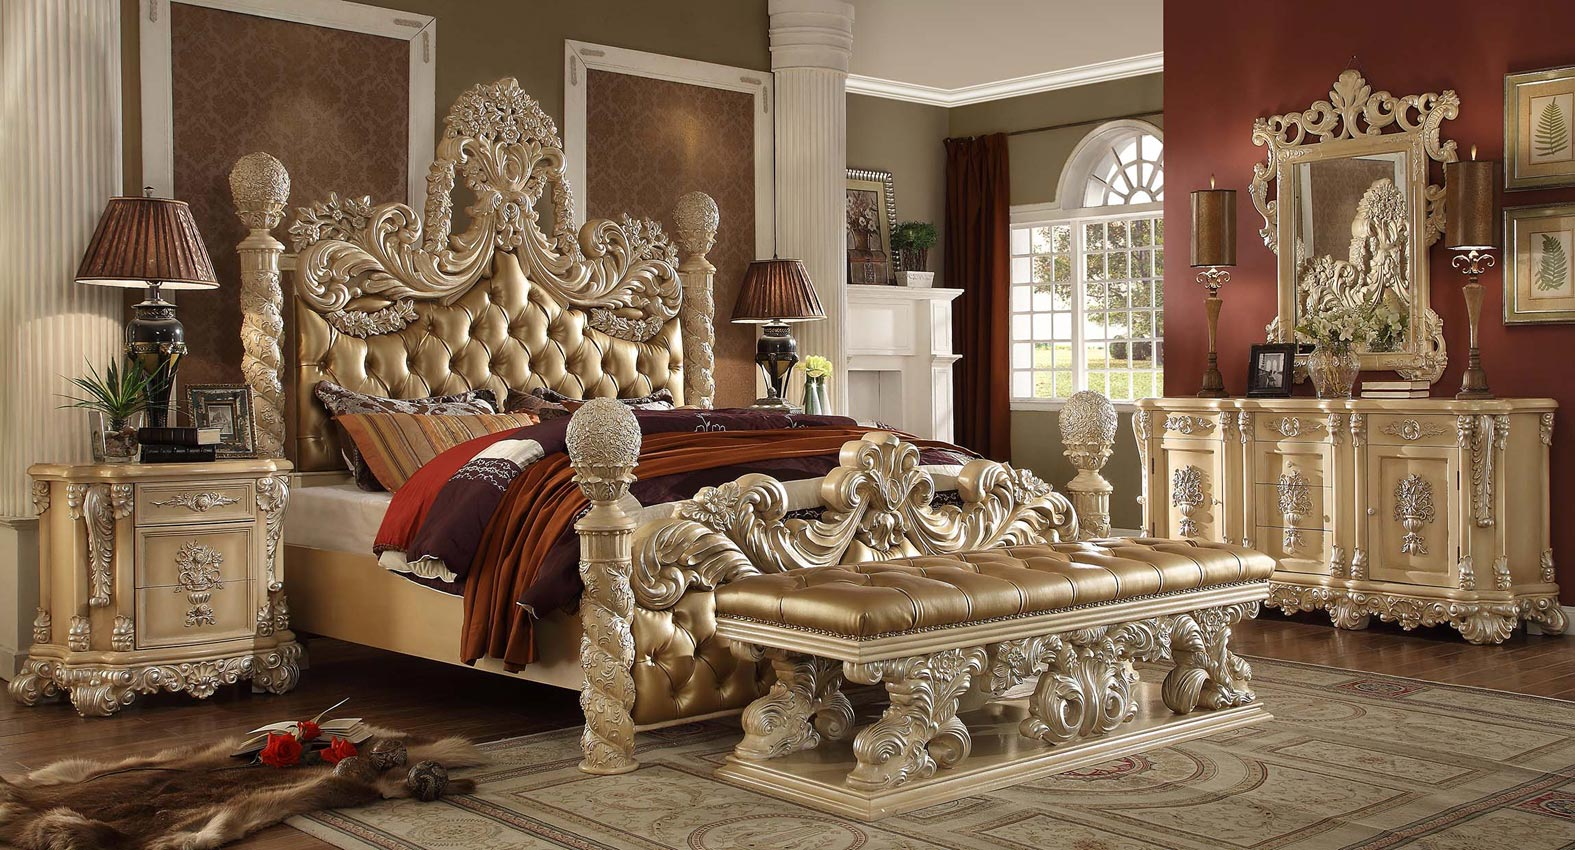 King Ivory Elegant Bed Frame